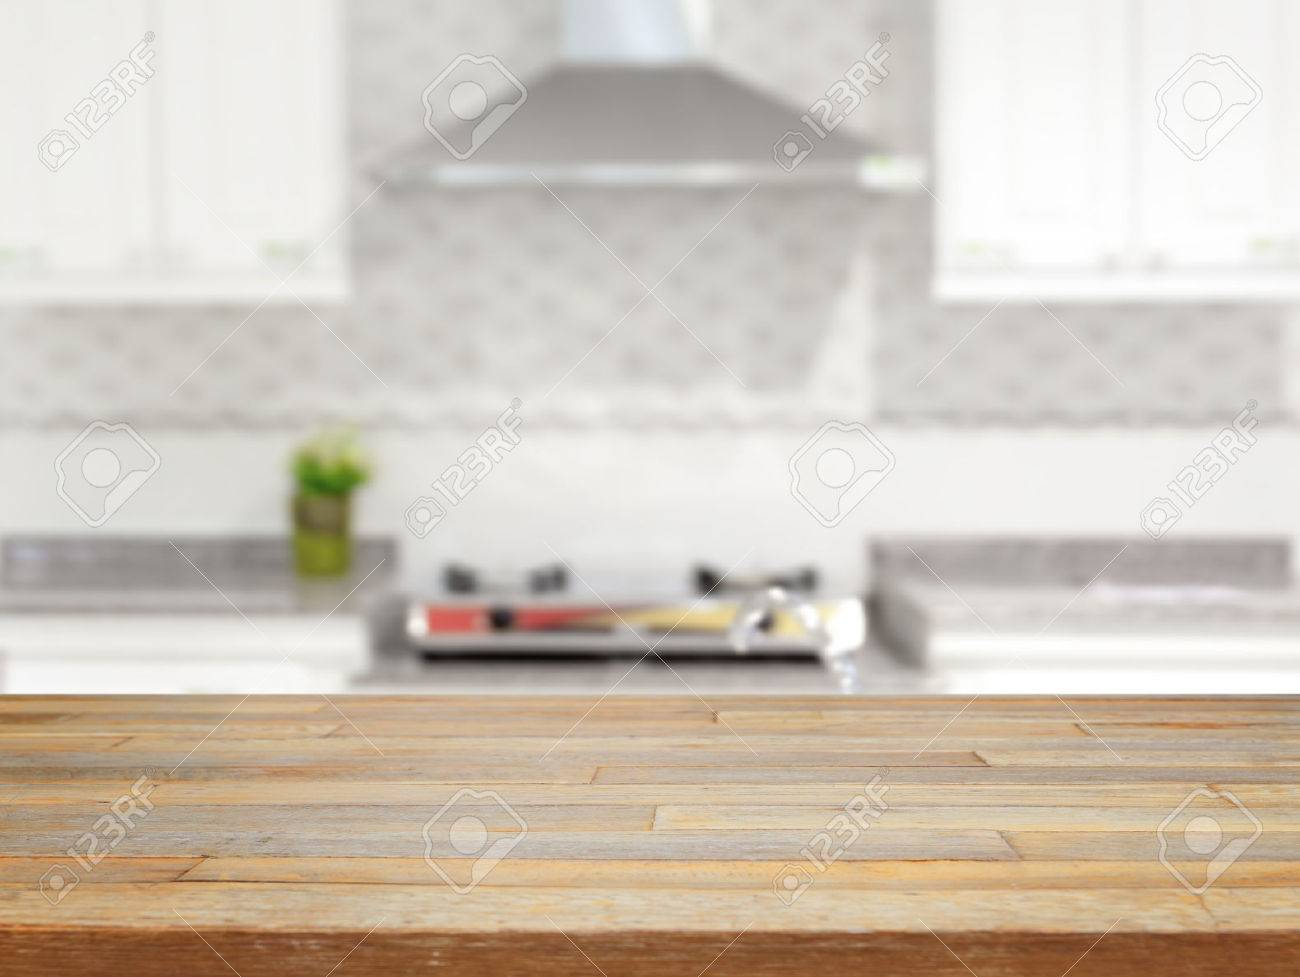 Empty wood table and blurred living room background stock photo - Empty Wooden Table And Blurred Kitchen Background Product Display Stock Photo 40383795